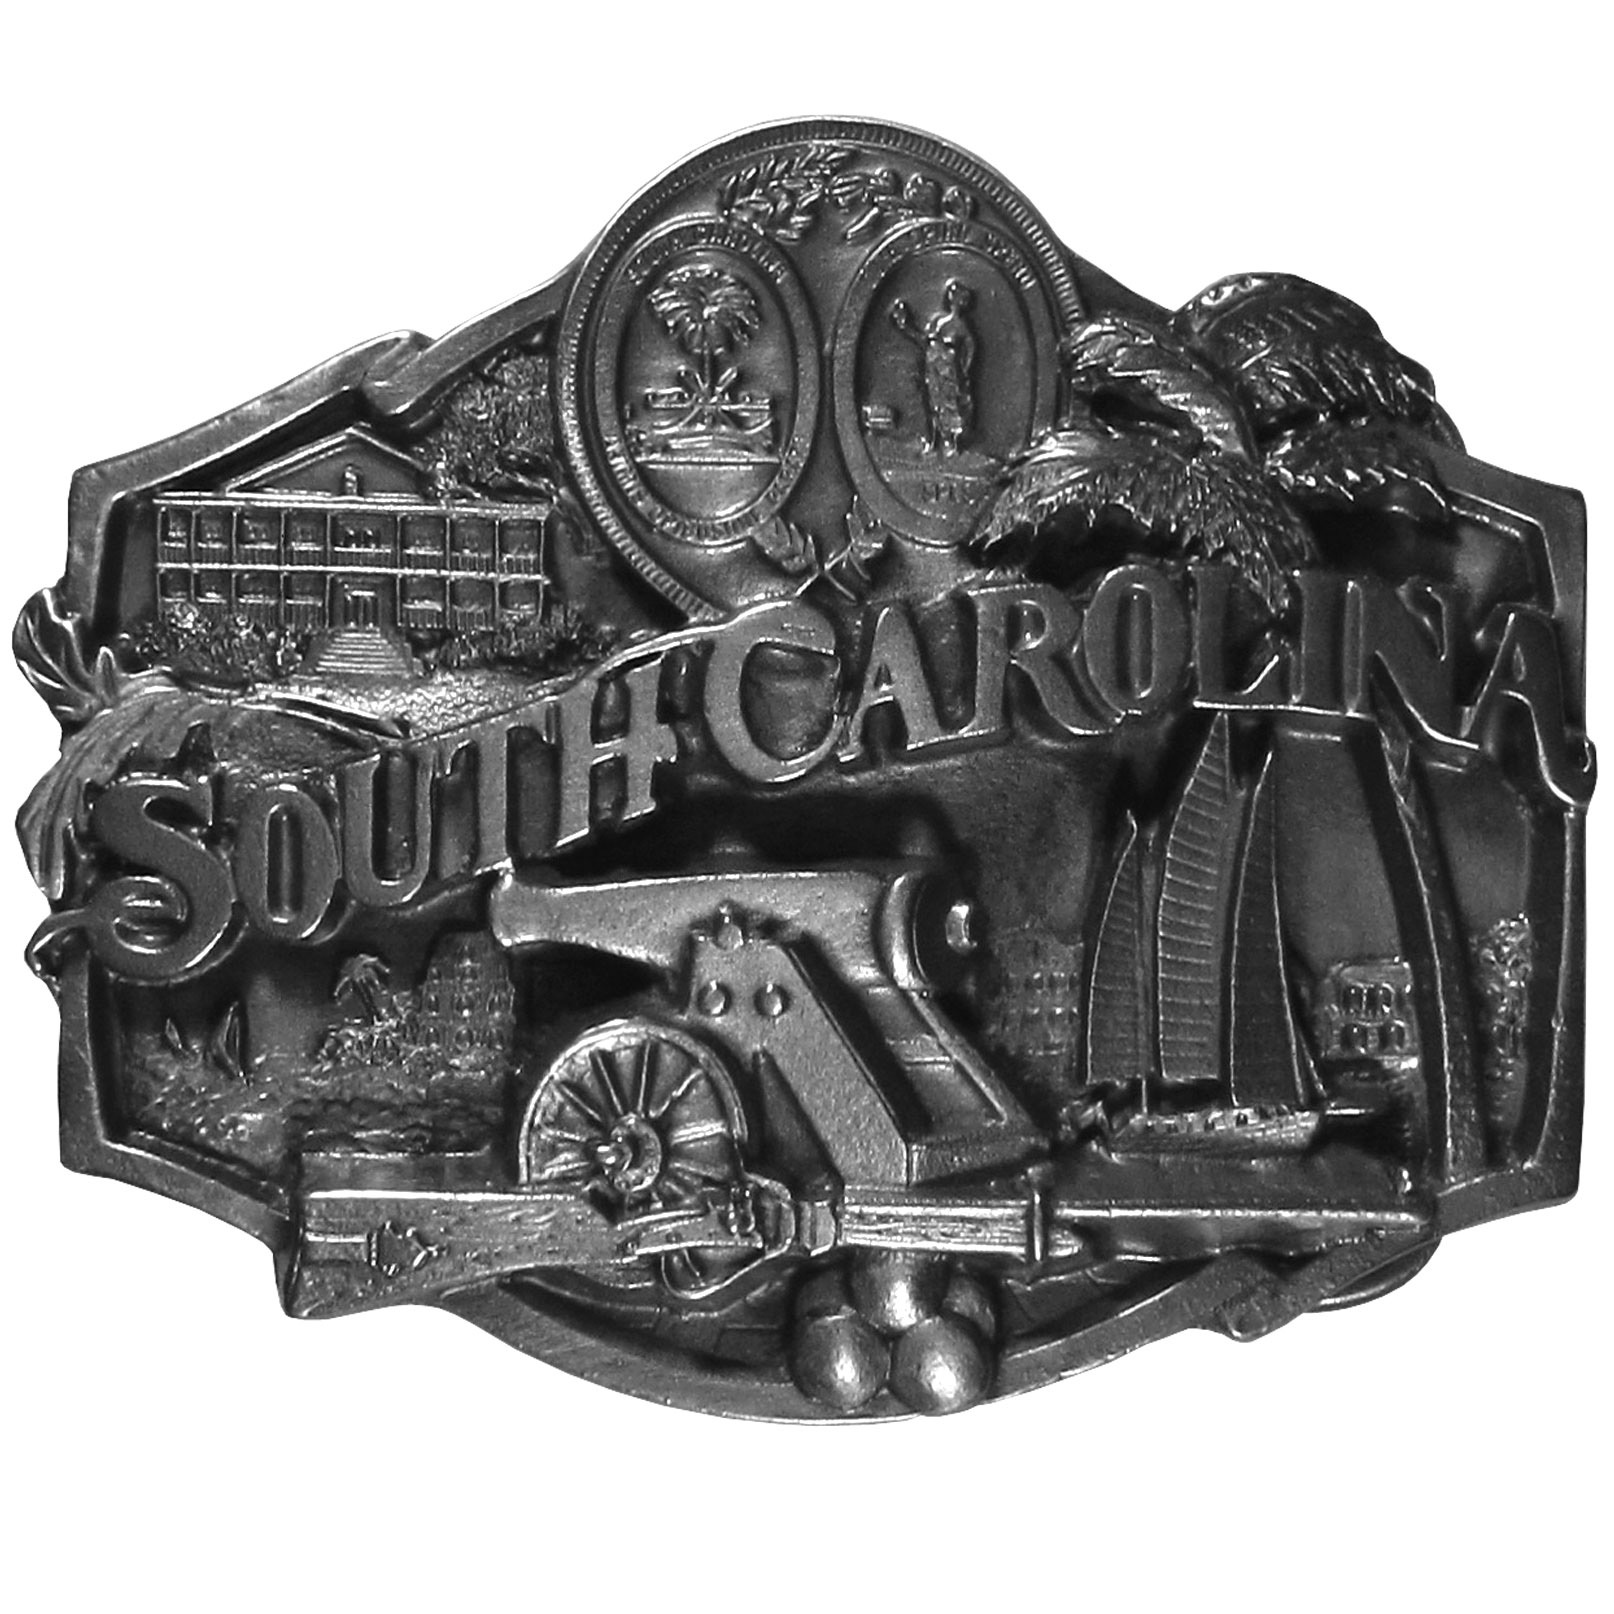 "S. Carolina Antiqued Belt Buckle - ""South Carolina"""" is centered on this beautiful buckle with symbols of the state surrounding, including the state tree, the sabal palmetto, a plantation house, musket, cannon and cannonballs and a sailing boat.  This exquisitely carved buckle is made of fully cast metal wth a standard bale that fits up to 2"""" belts."""